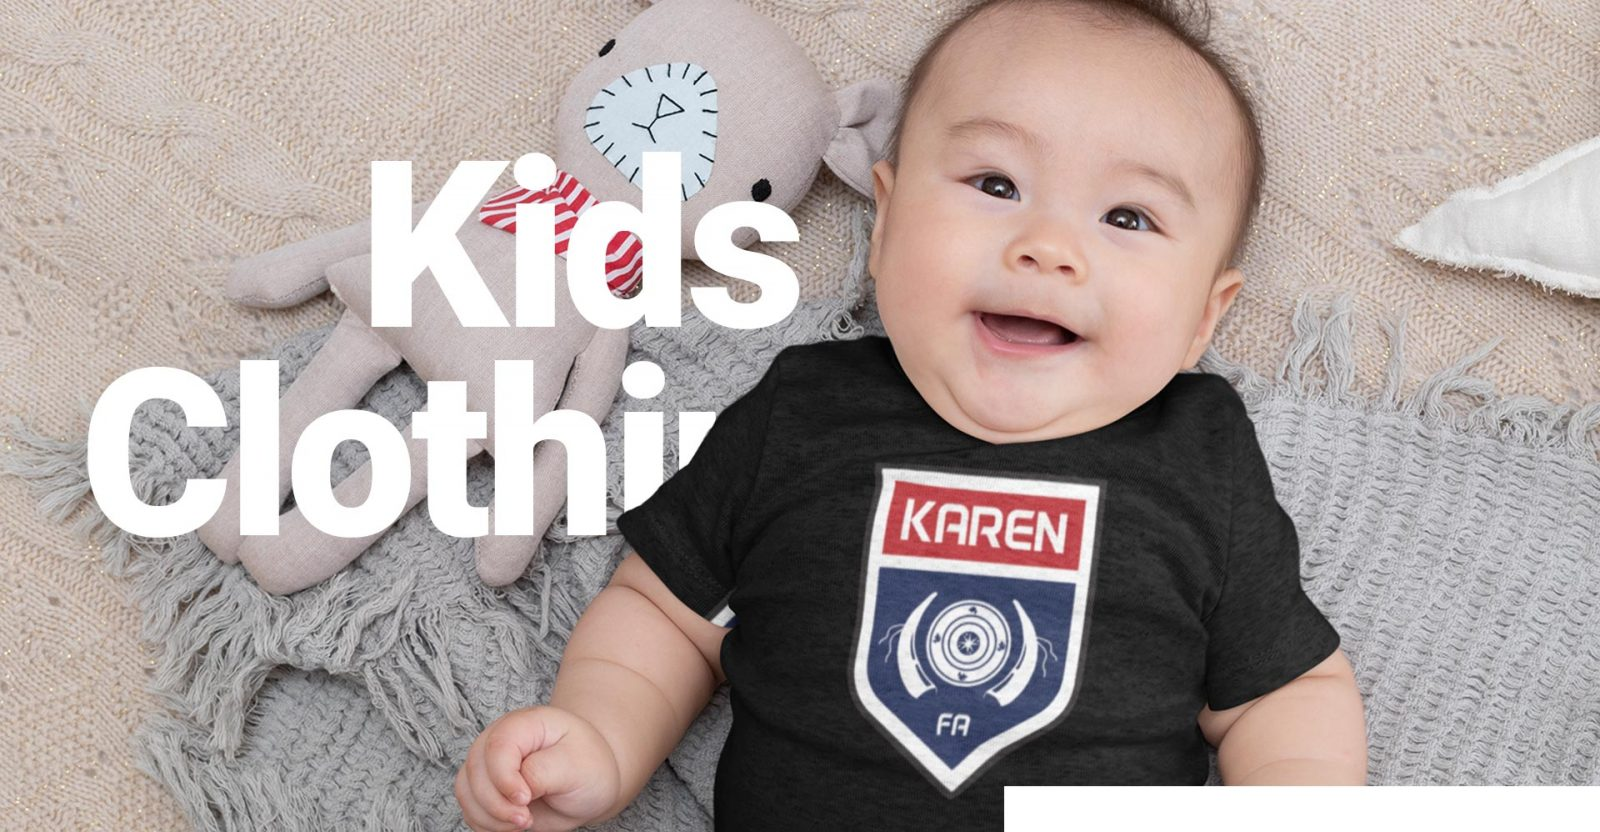 karen-national-team-full-image-header-desktop-kids-clothing-new-2